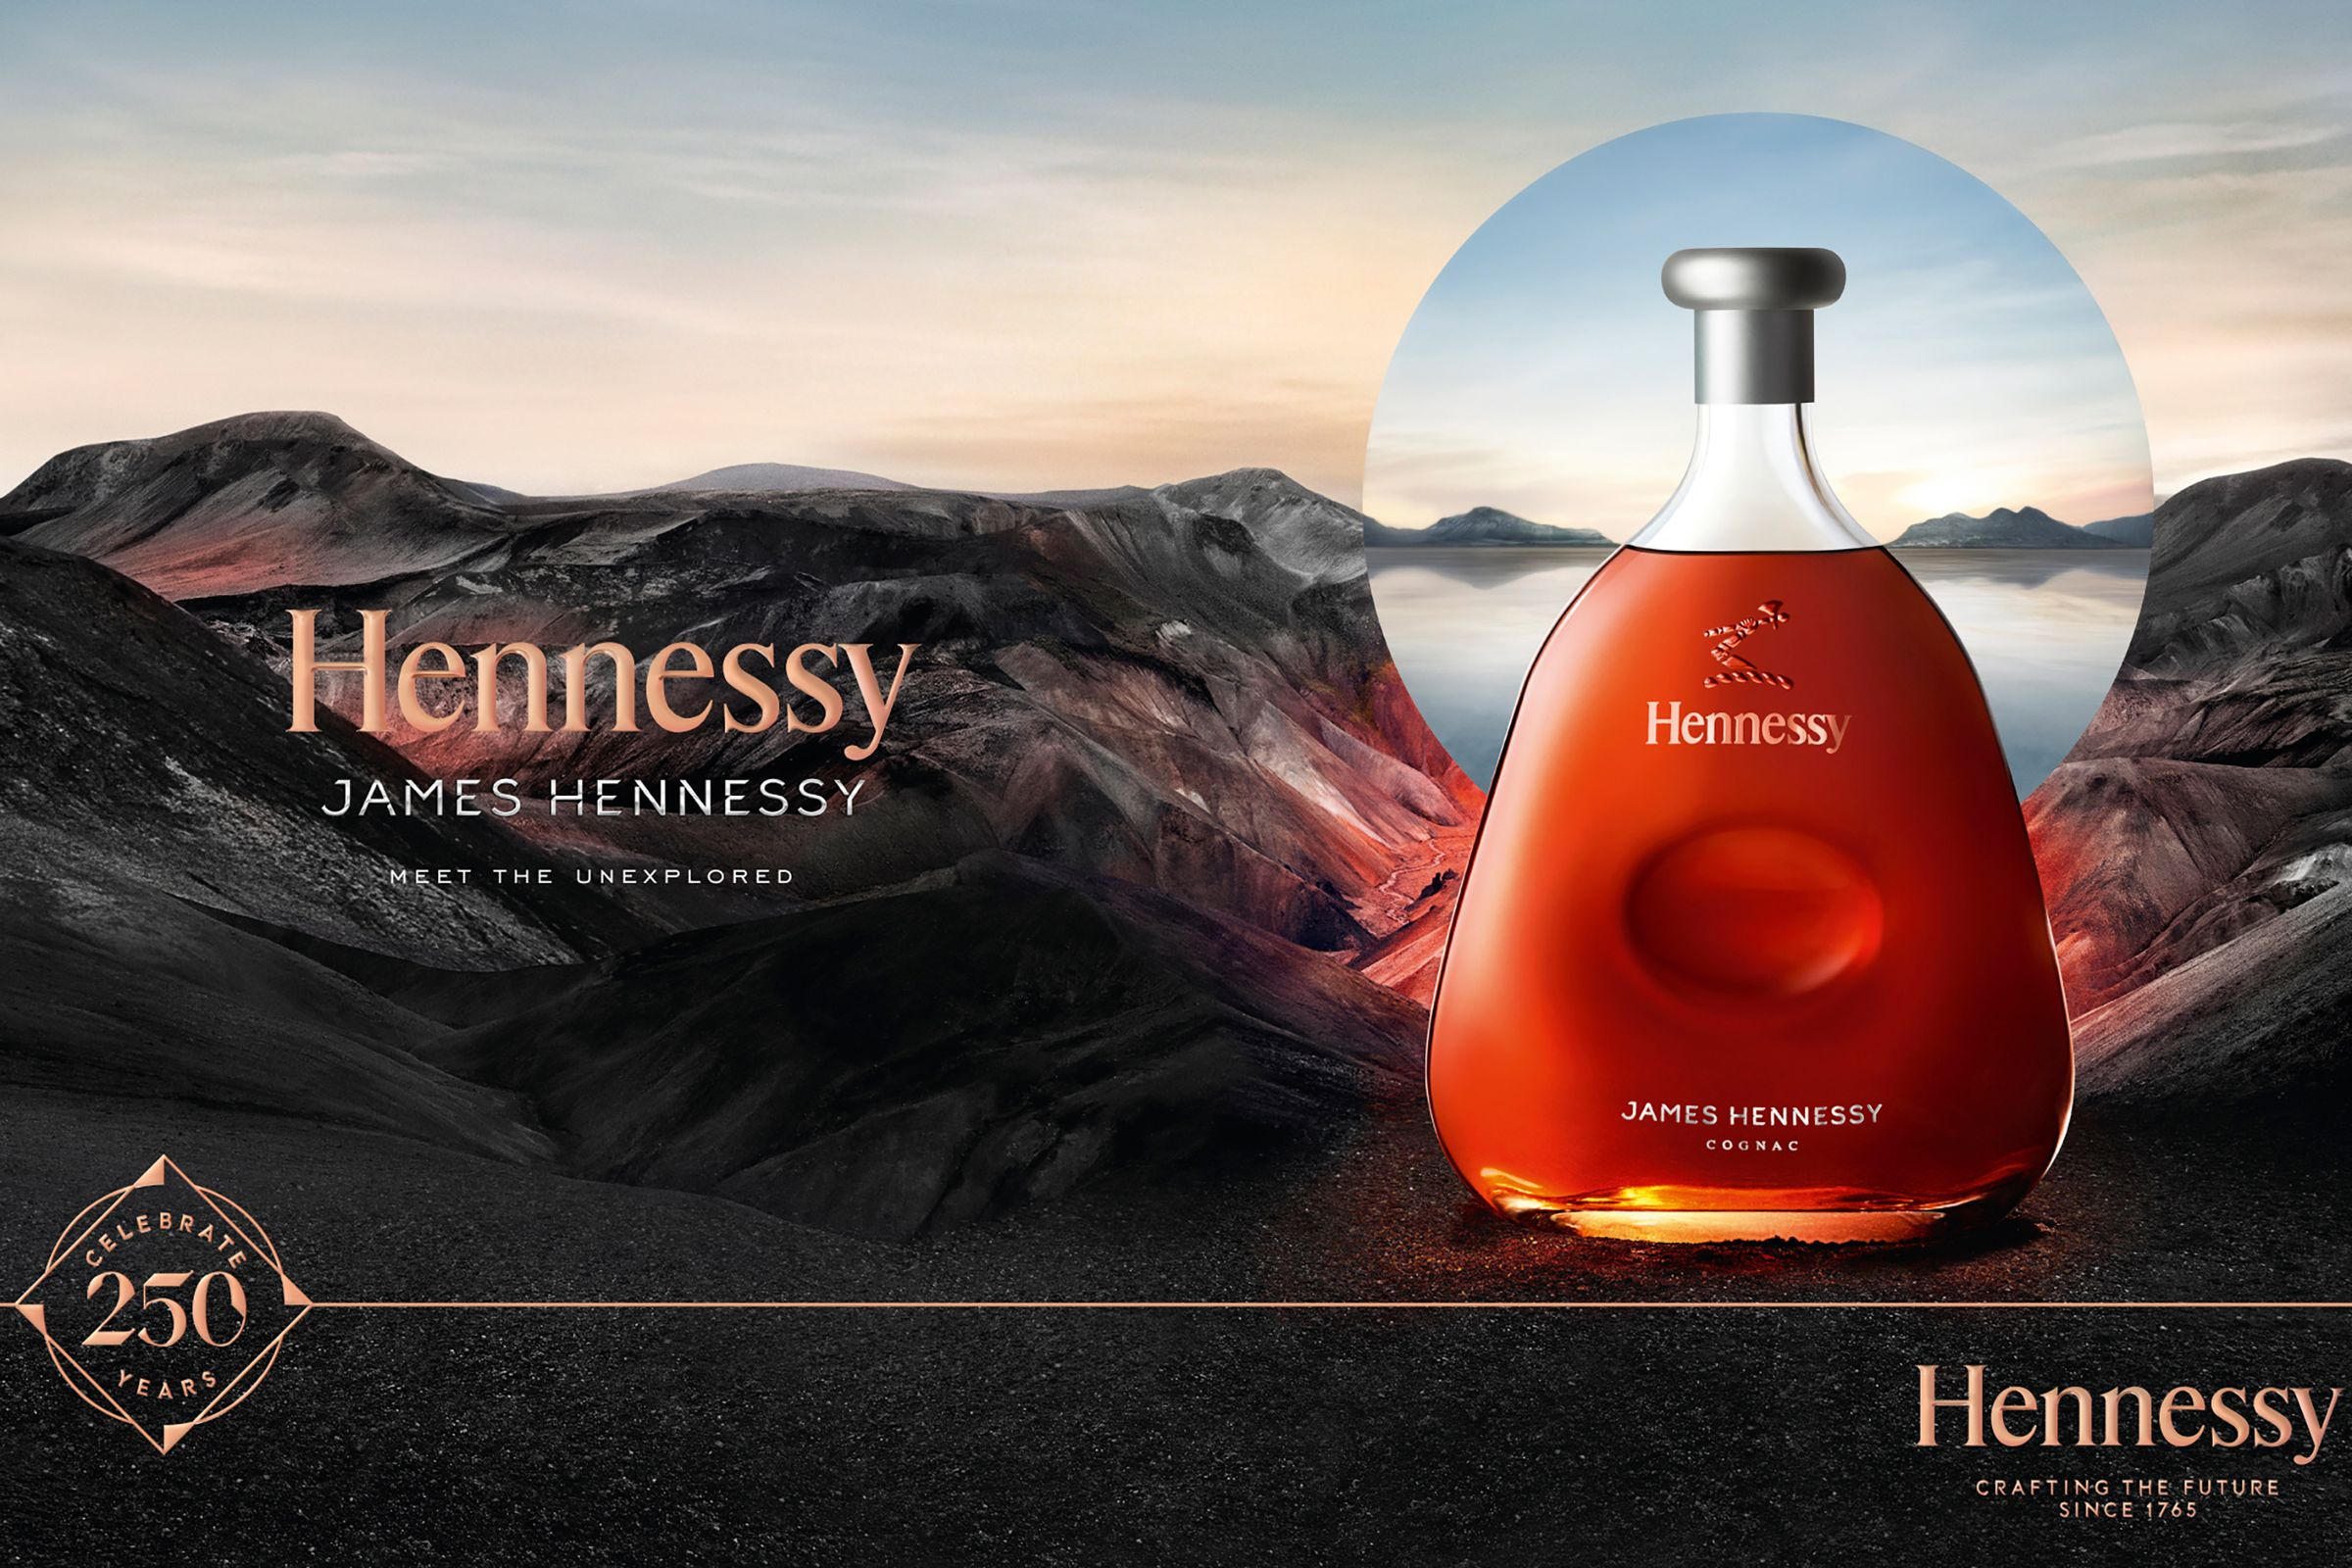 James Hennessy campaign image